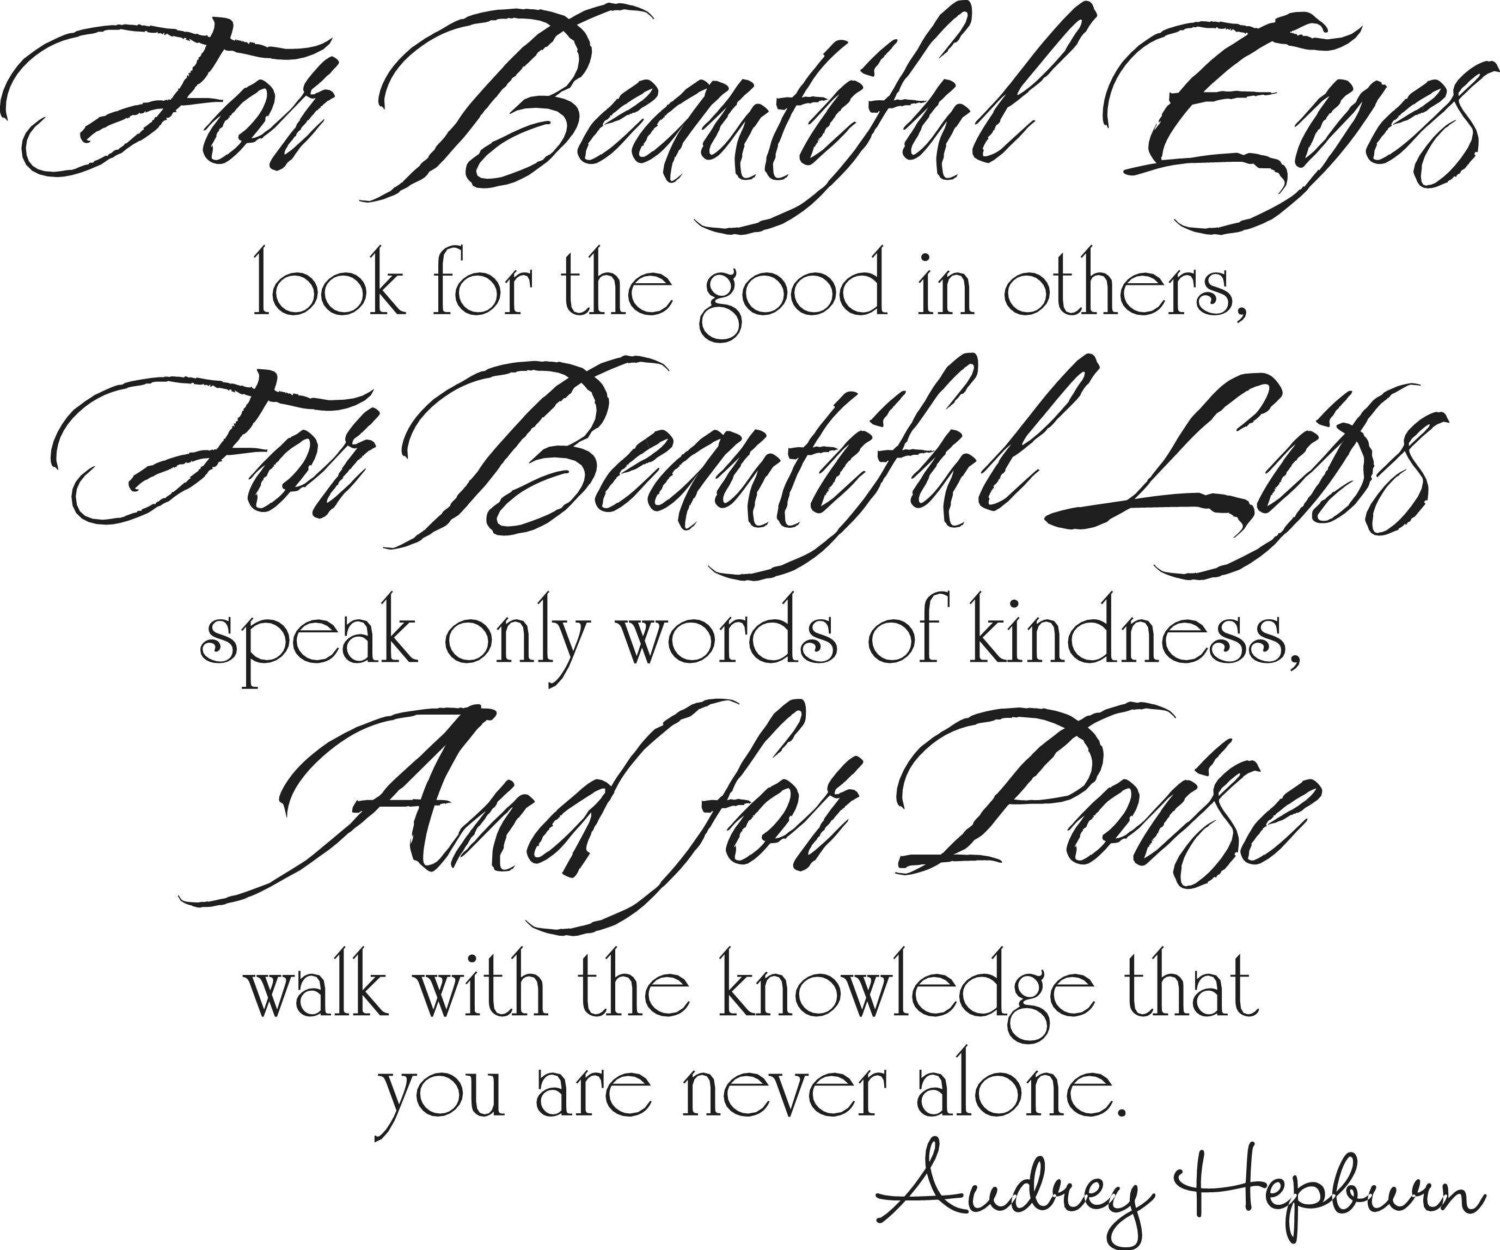 Quotes About Beauty: AUDREY HEPBURN QUOTE For Beautiful Eyes Vinyl Lettering Wall